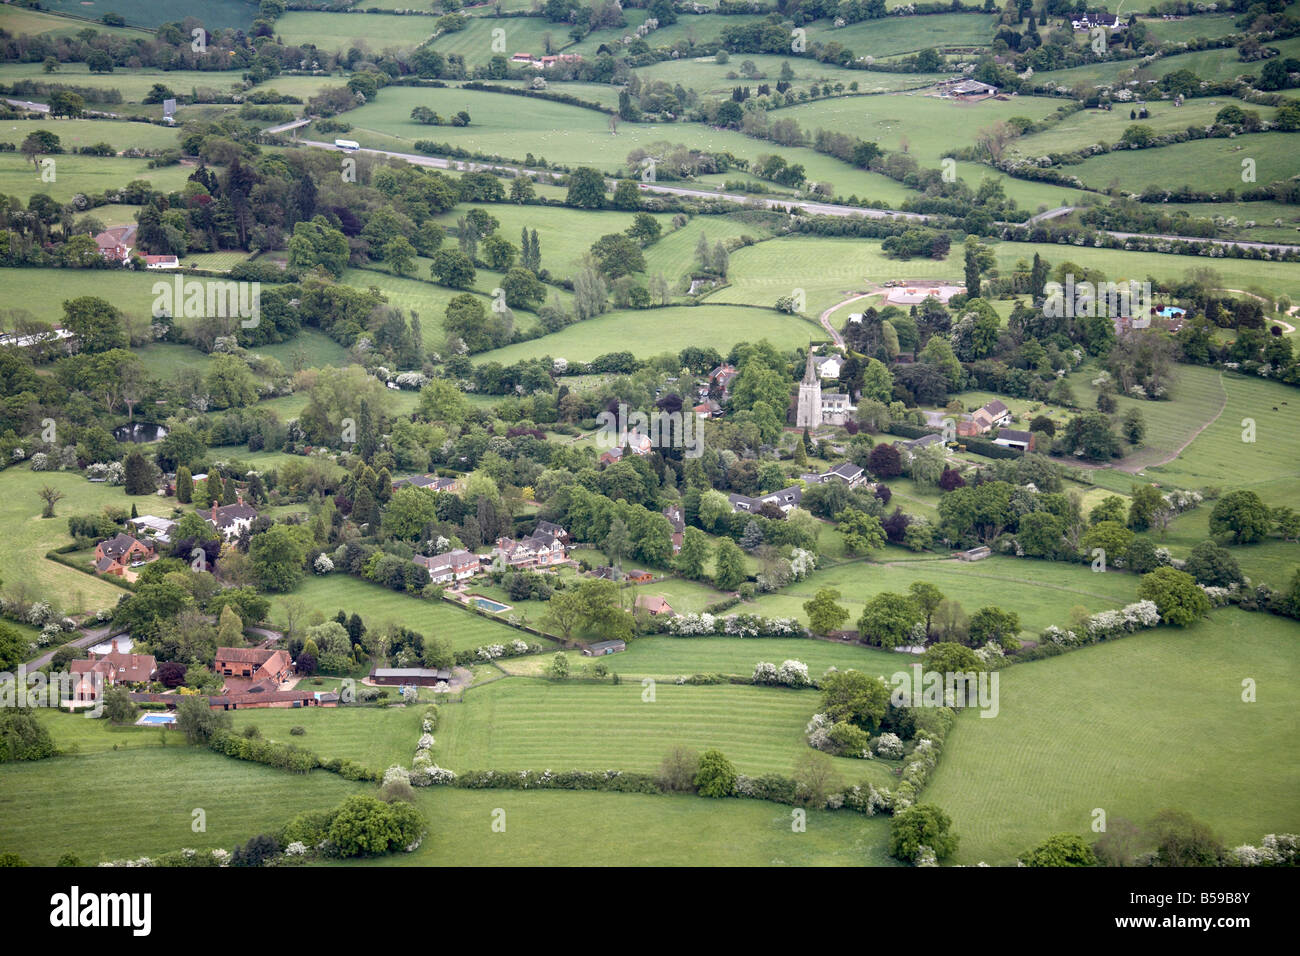 Aerial view south of Lapworth Village country houses gardens church fields trees Church Lane M40 Motorway Warwickshire - Stock Image